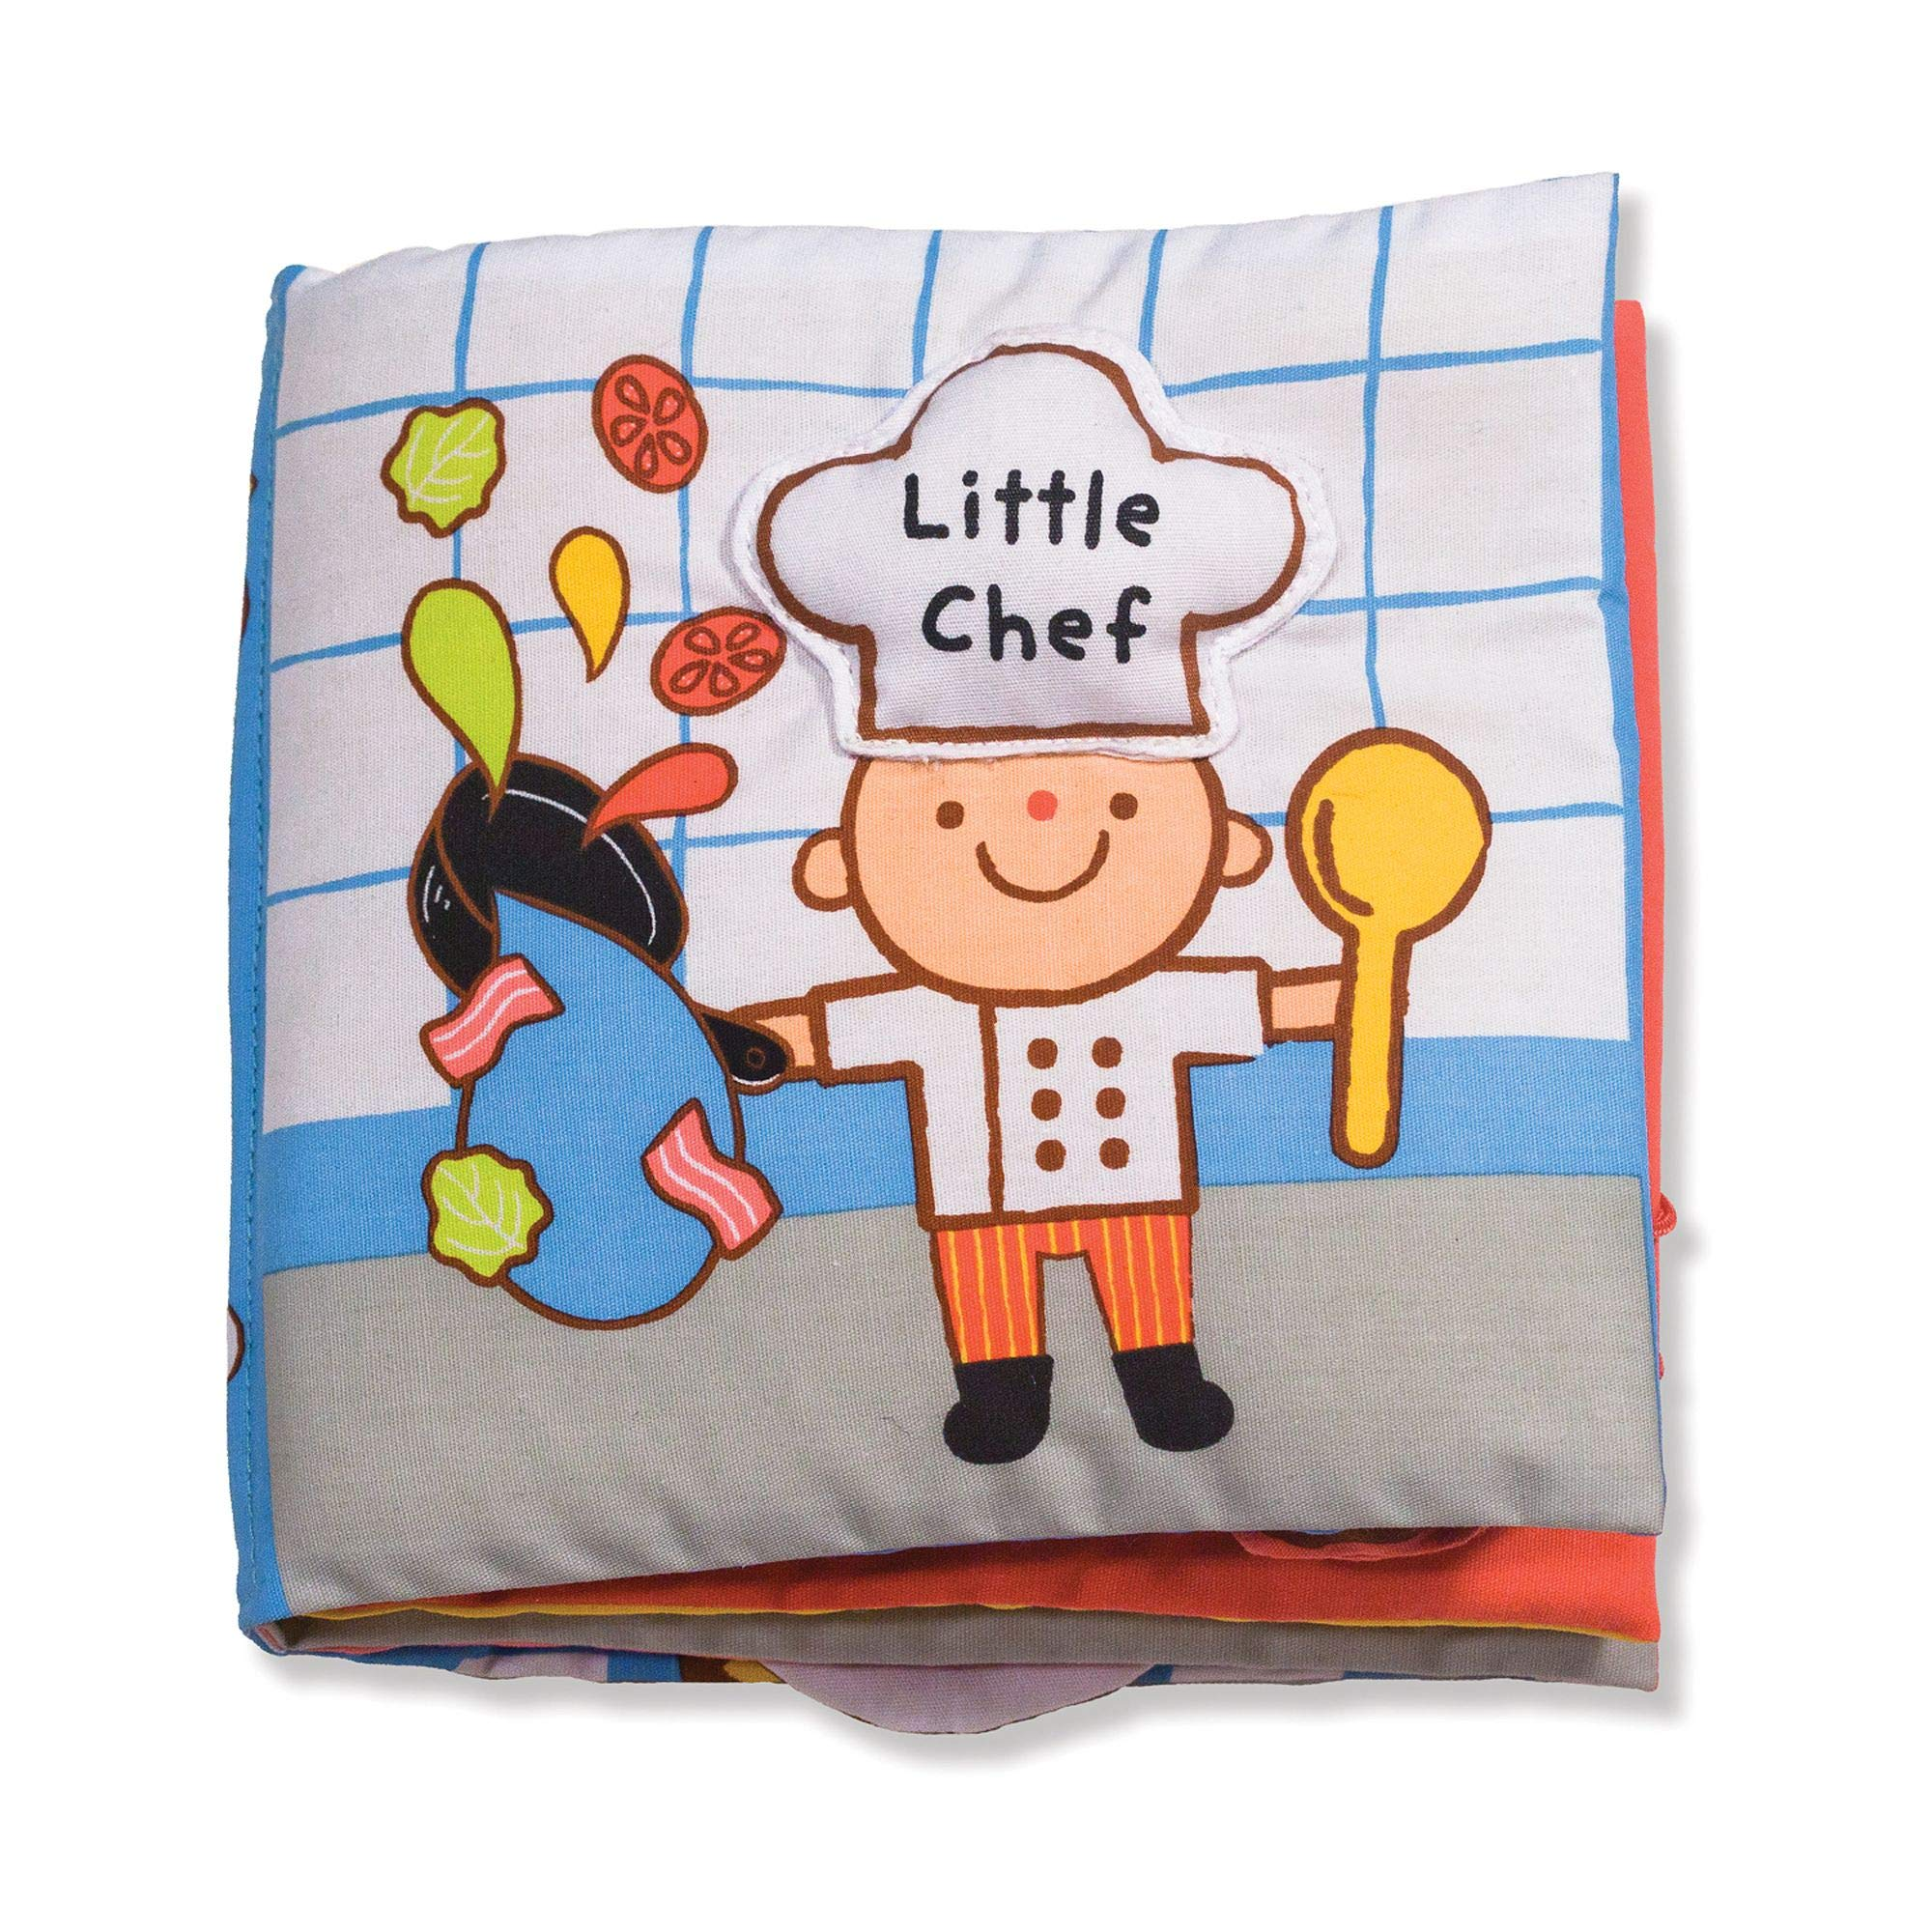 Melissa & Doug Soft Activity Book – Little Chef, The Original (Developmental Toys, Cloth Lift-the-Flap Baby Book, Machine Washable, Great Gift for Girls & Boys - Best for Babies & Toddlers)